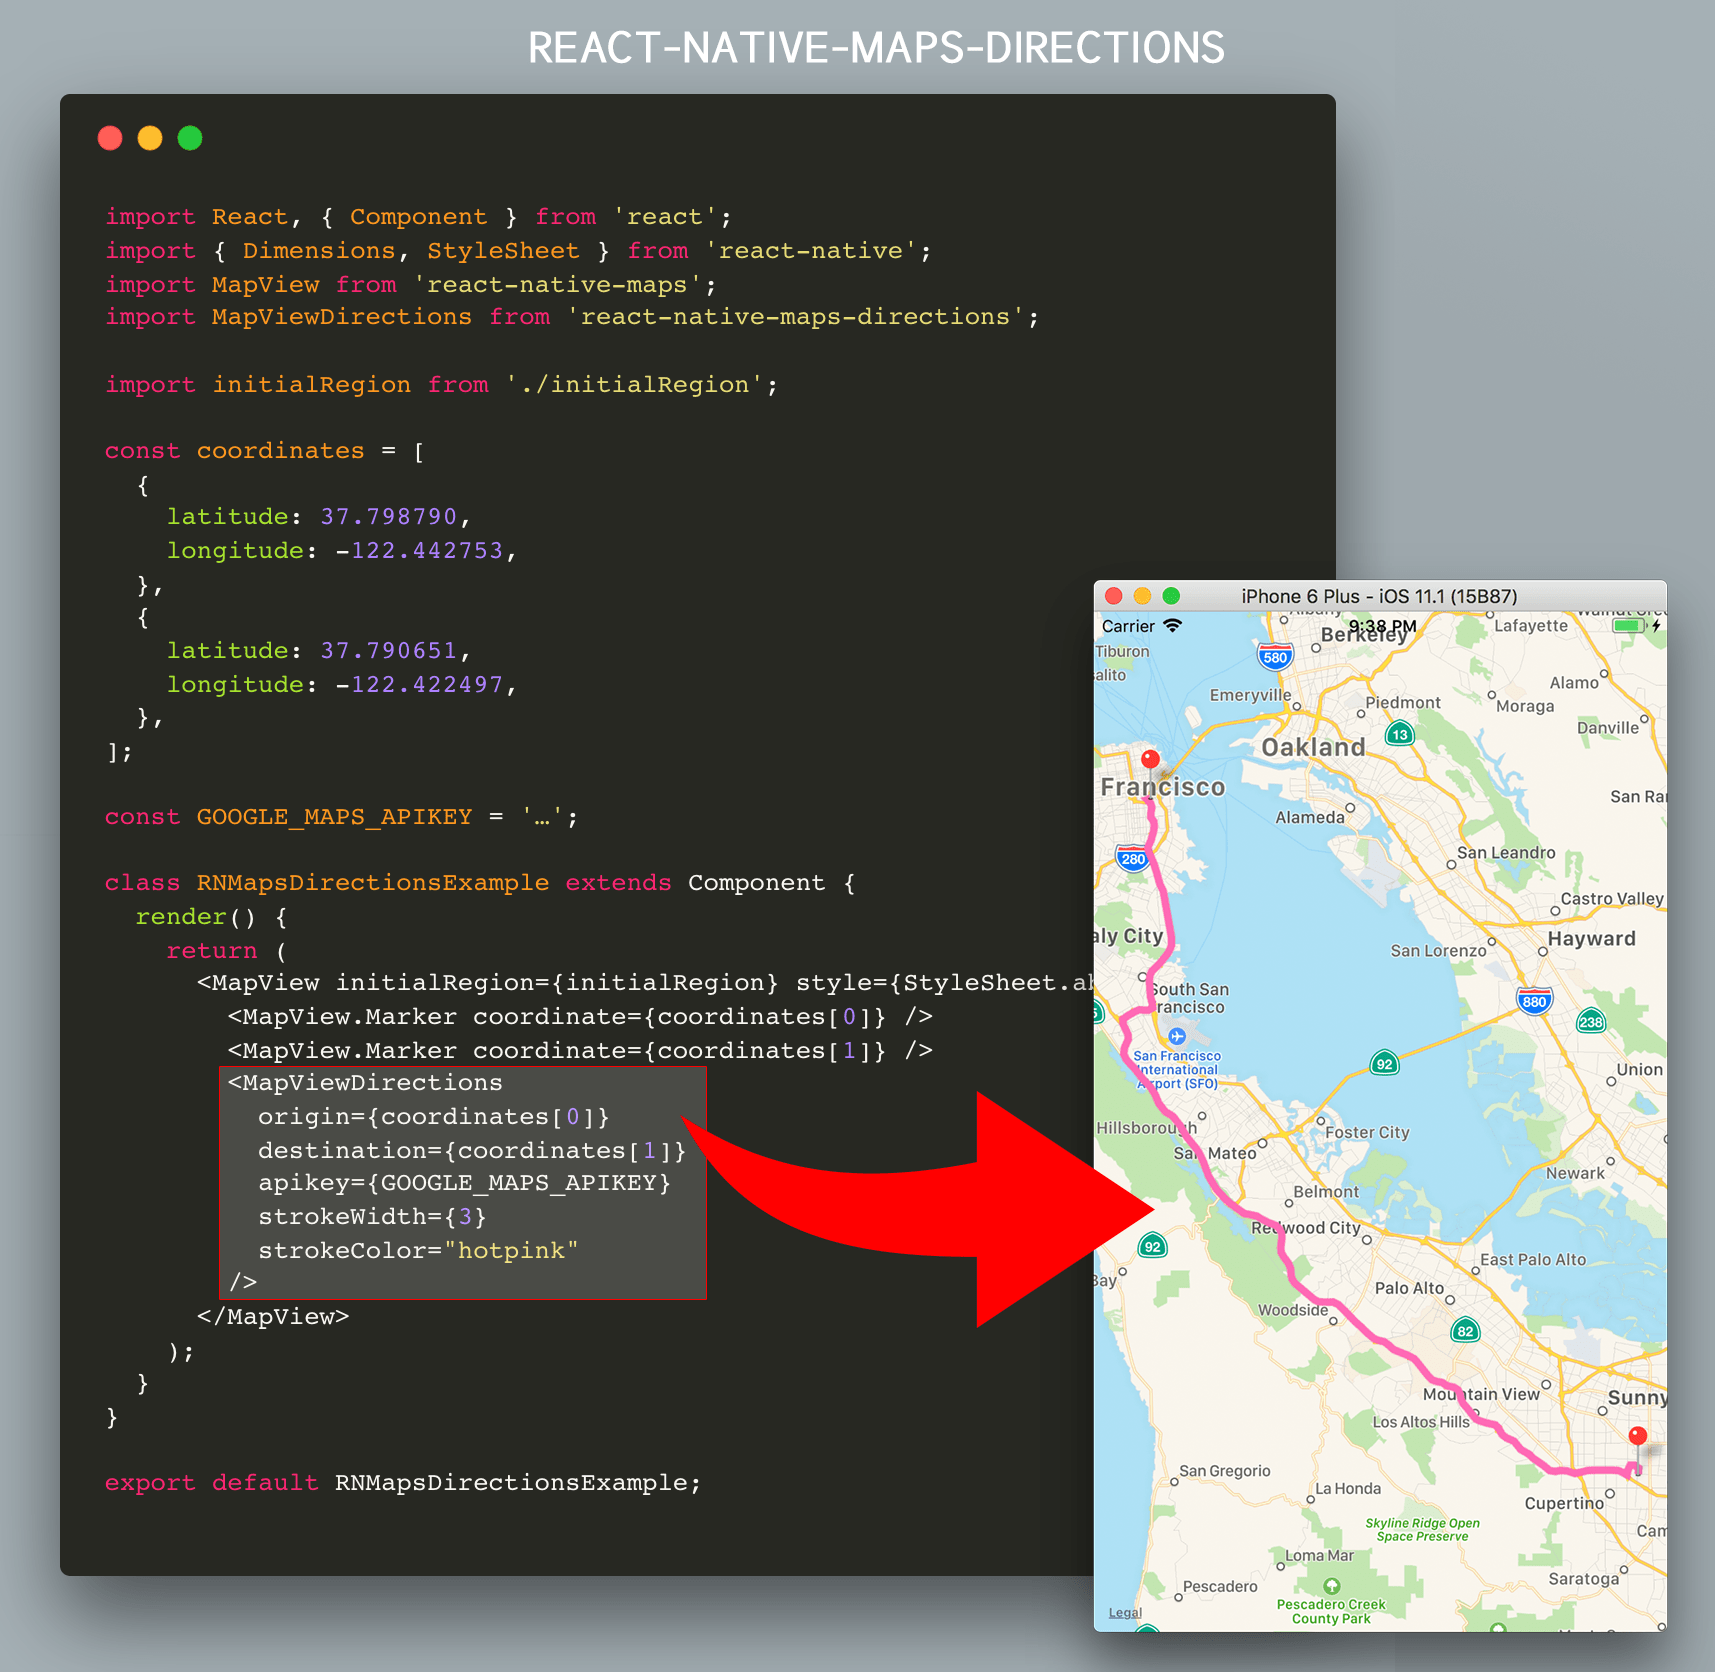 reactnativemapsdirections DirectionsRouting component for